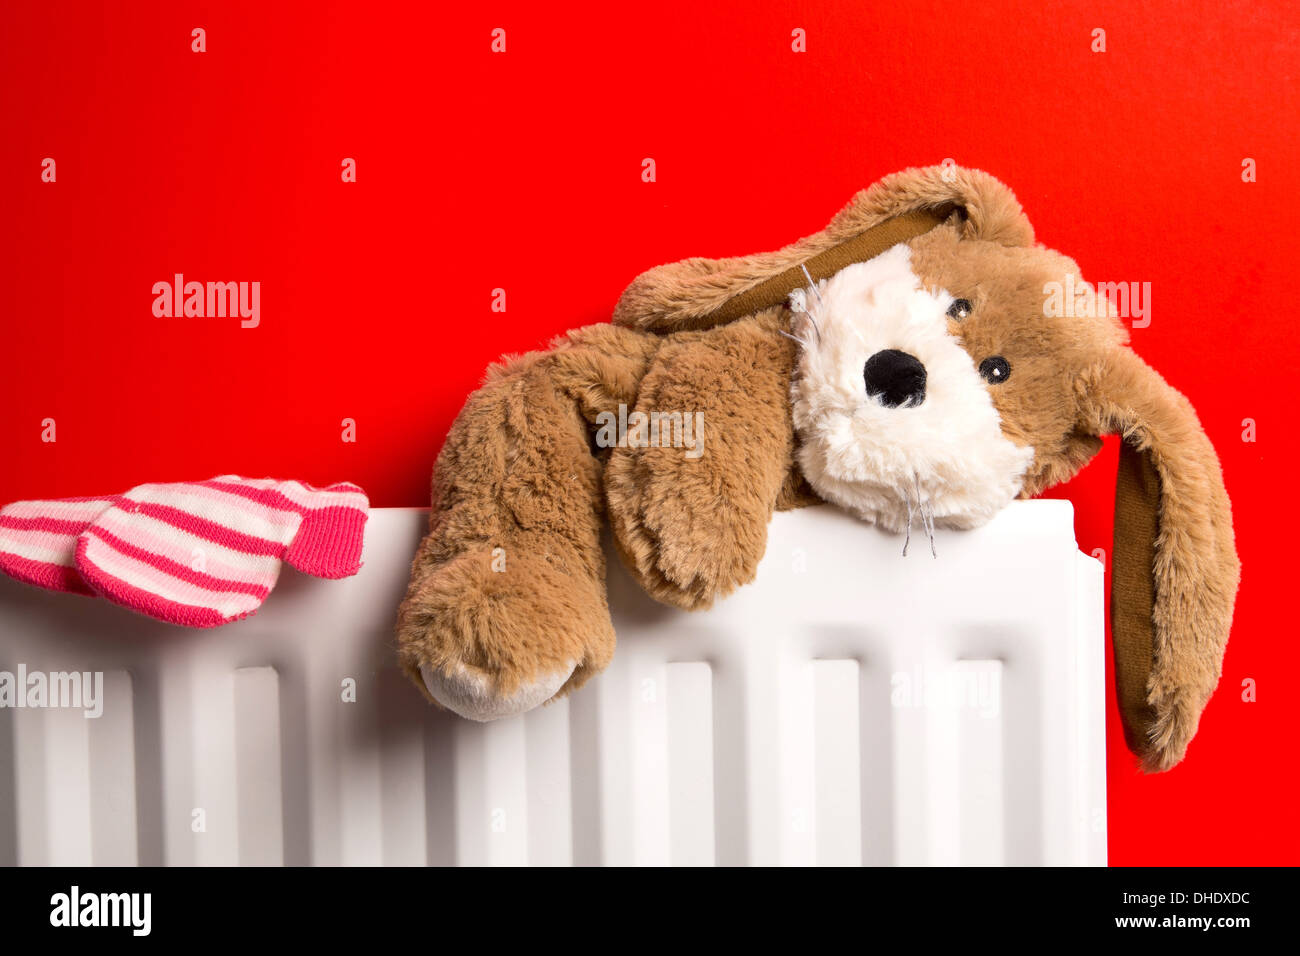 A child's bedroom with a teddy bear and a pair of mittens placed on top of a radiator heater. - Stock Image